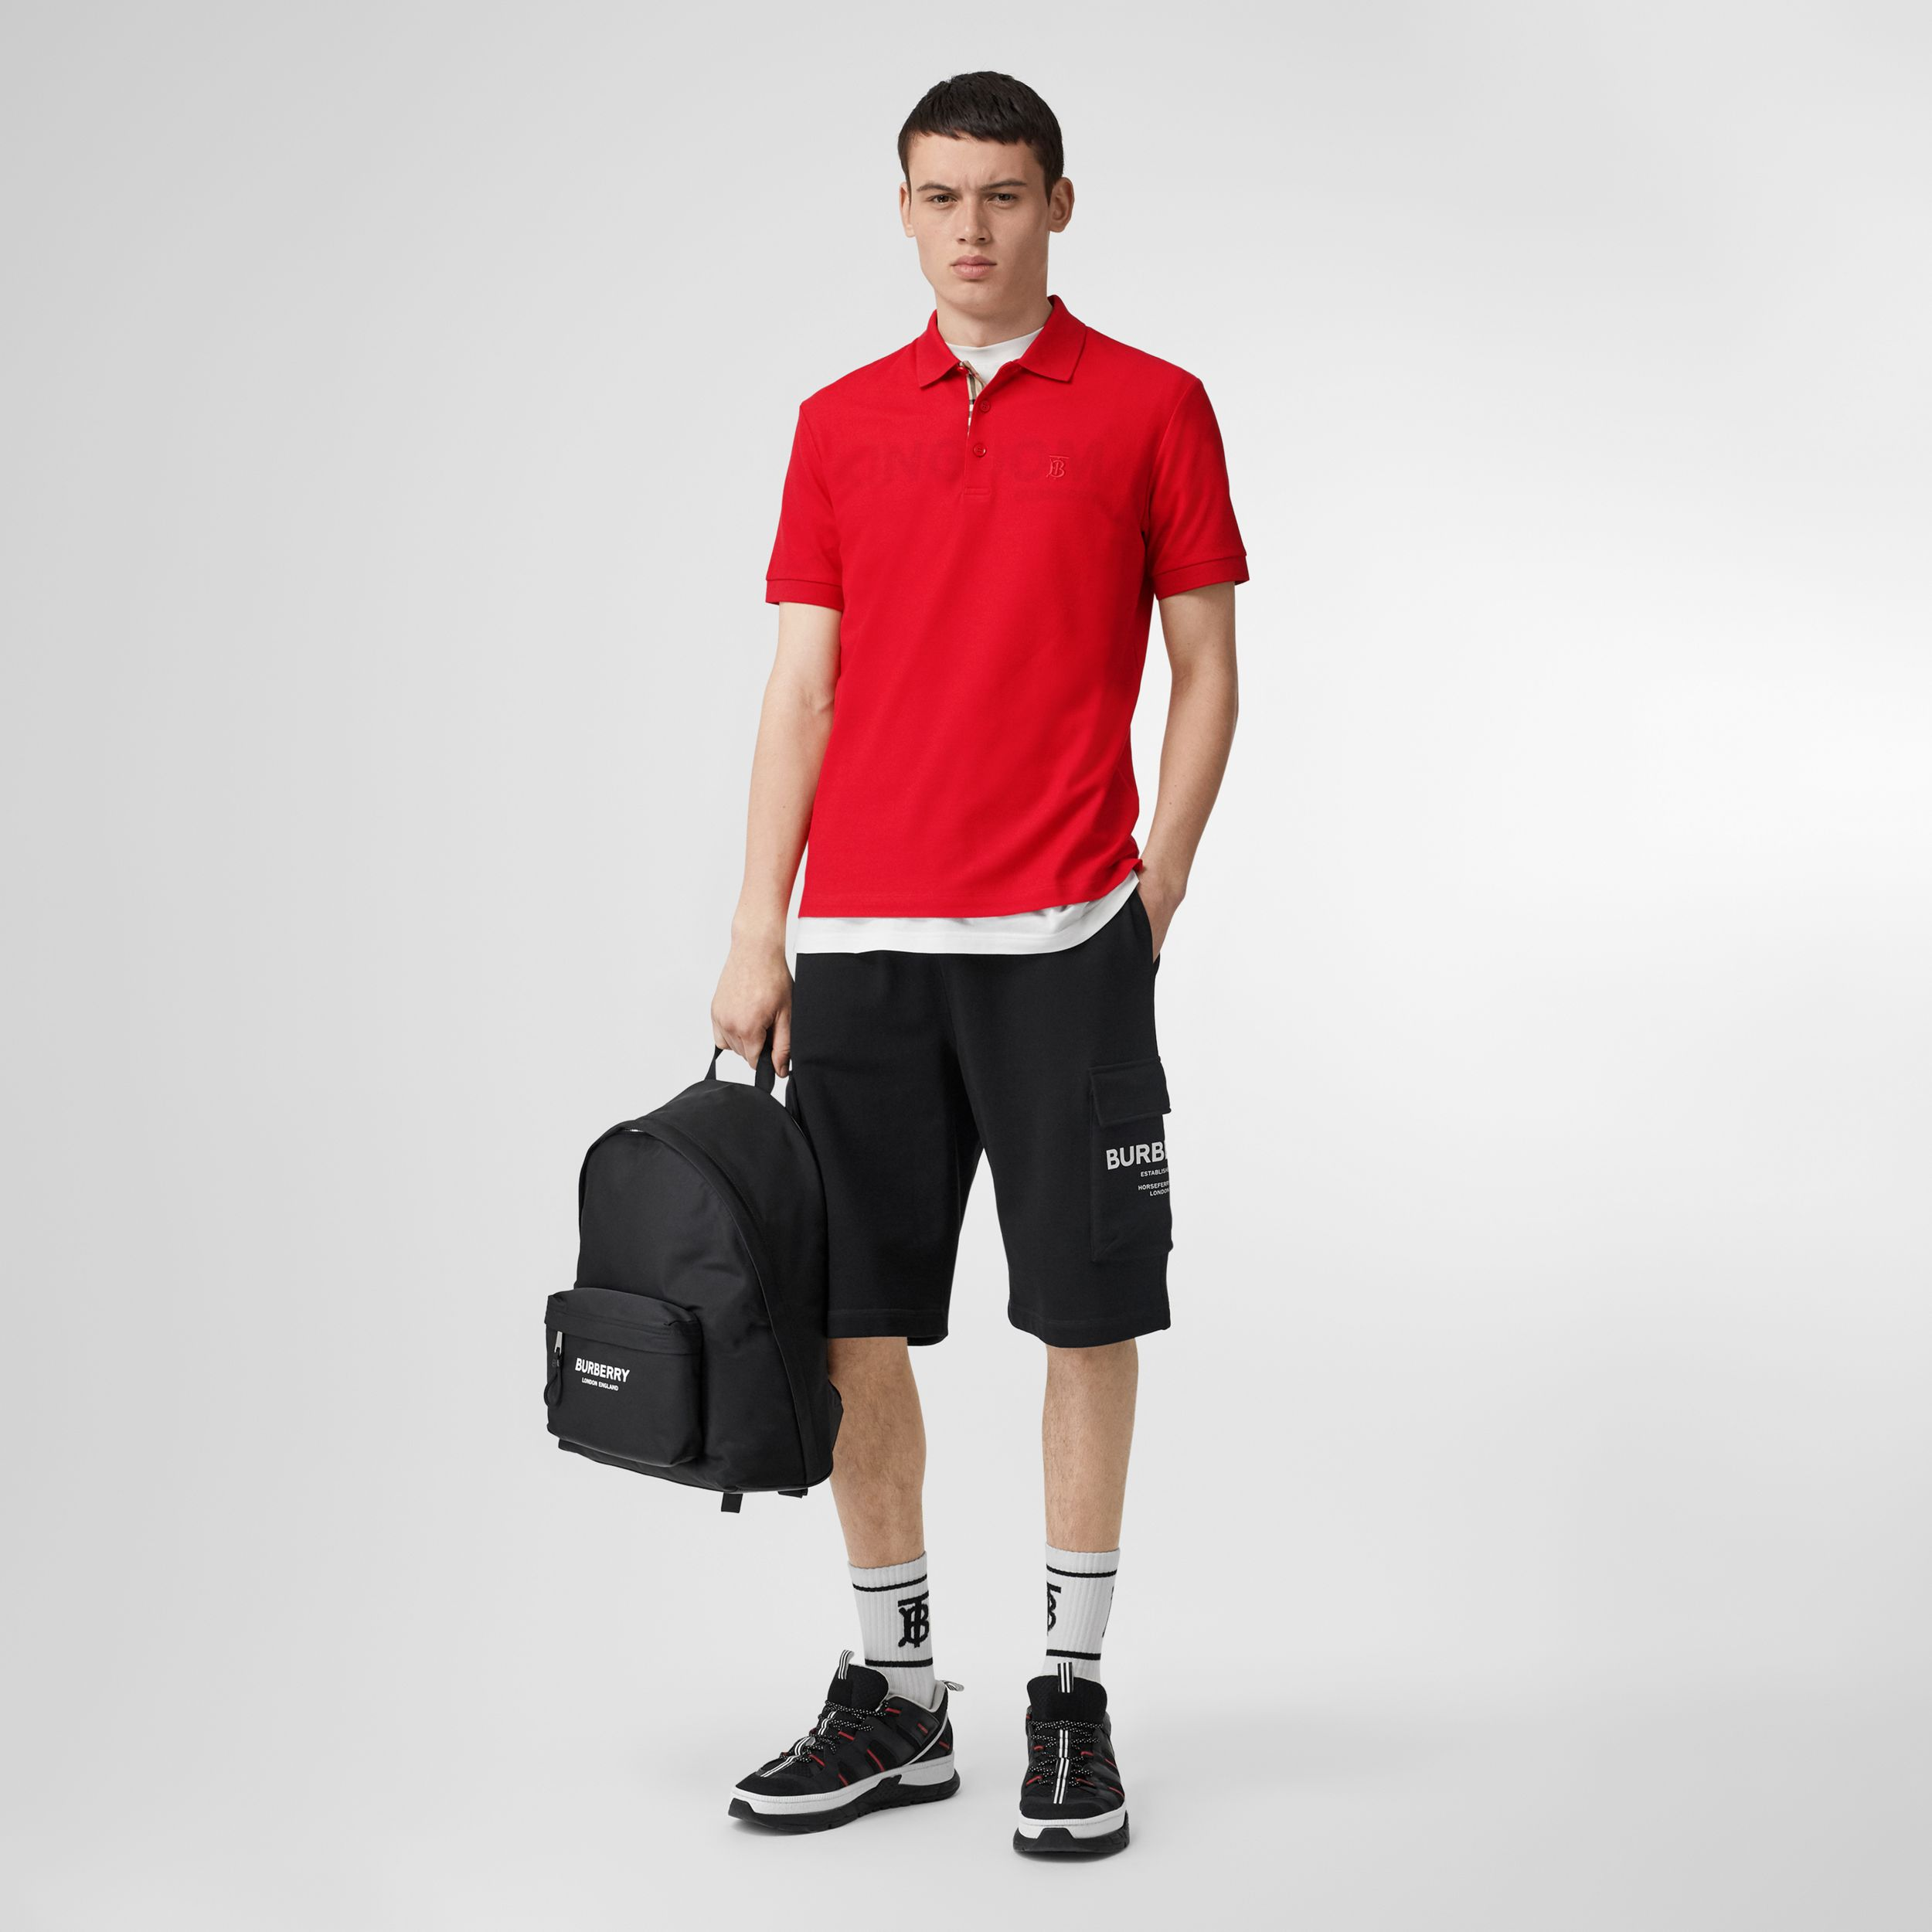 Monogram Motif Cotton Piqué Polo Shirt in Bright Red - Men | Burberry - 1